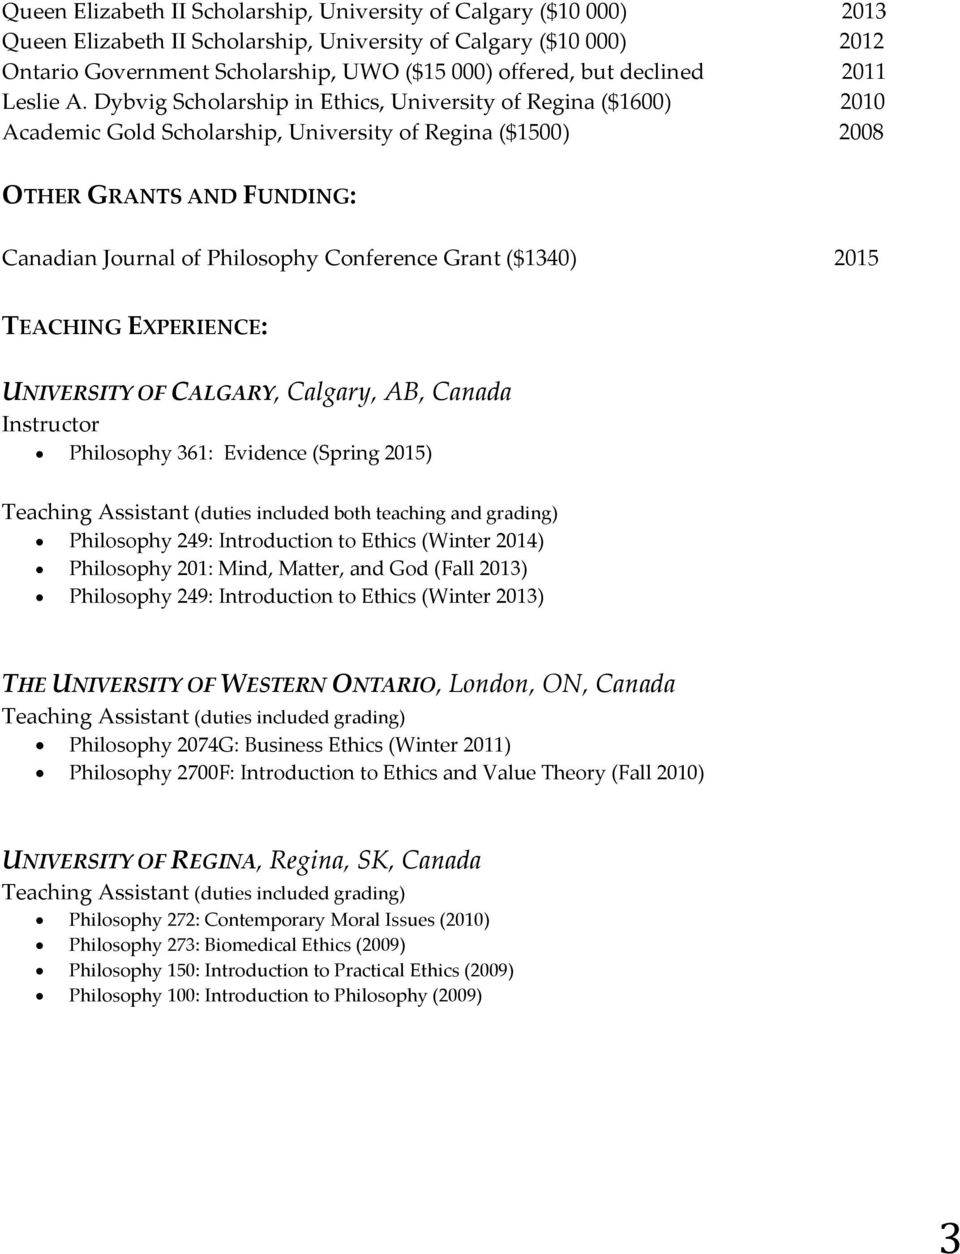 Dybvig Scholarship in Ethics, University of Regina ($1600) 2010 Academic Gold Scholarship, University of Regina ($1500) 2008 OTHER GRANTS AND FUNDING: Canadian Journal of Philosophy Conference Grant